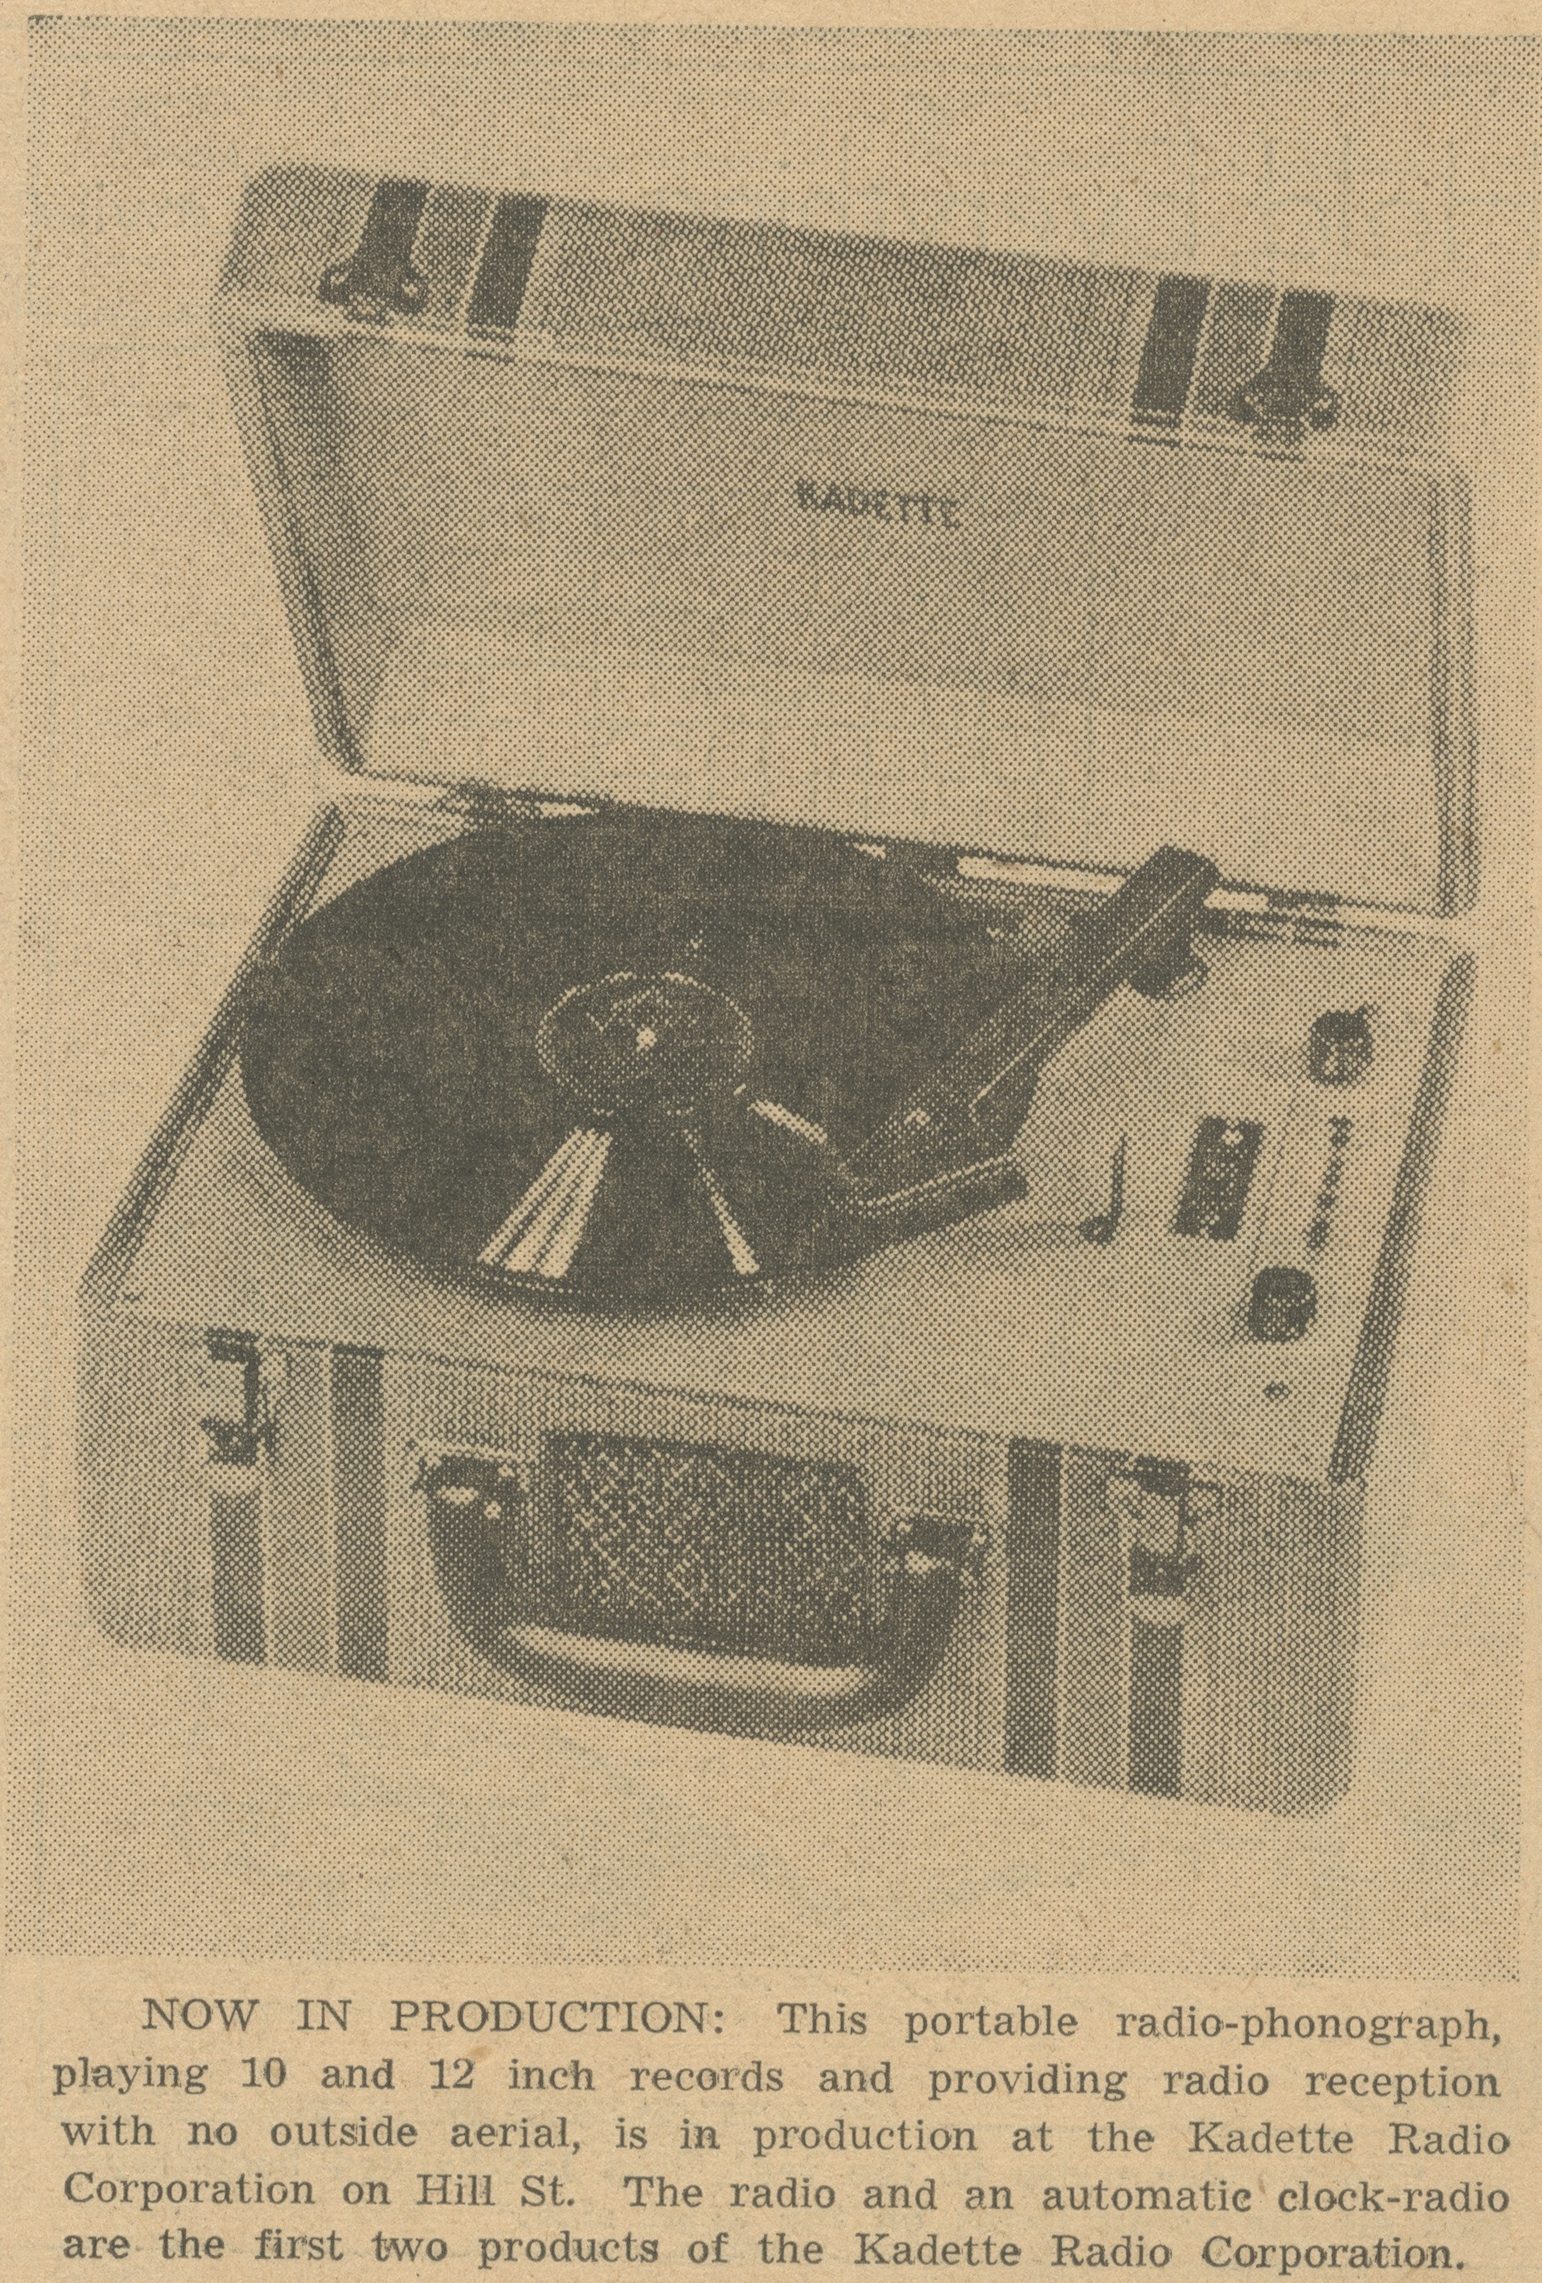 New Kadette Firm Begins Production -- Radio - Phonograph And Autime Clock Radio Placed On Market image